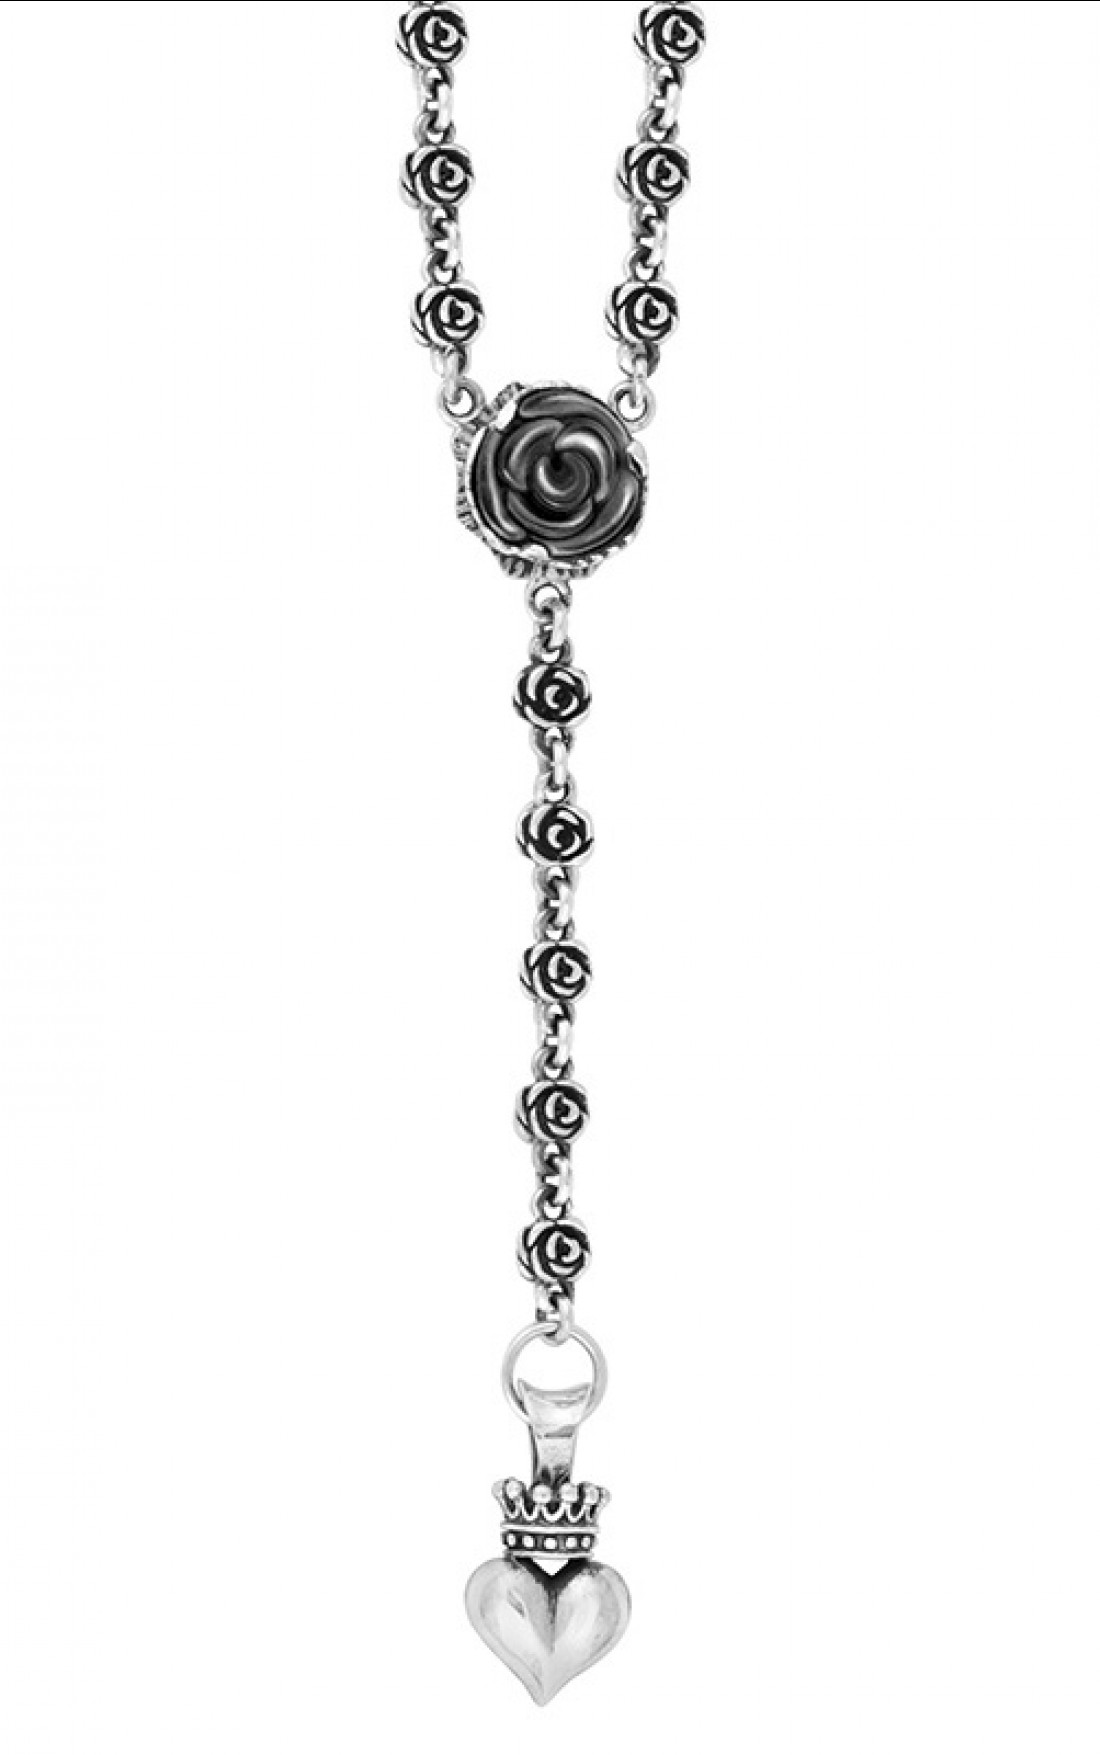 King Baby - Carved Jet Rose Rosary With Crowned Hearth Drop Necklace (K56-5117)